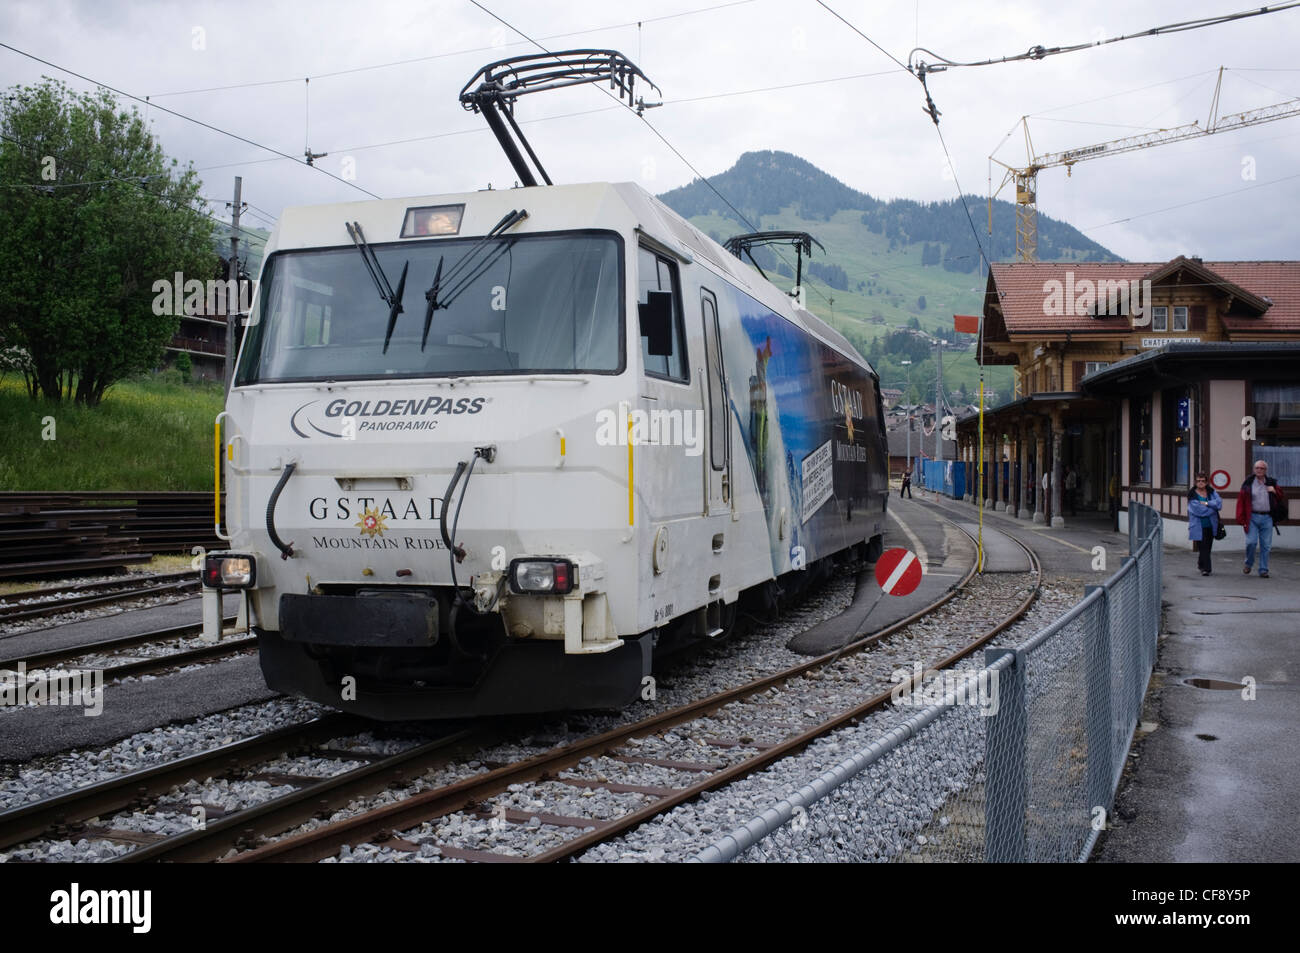 Golden Pass Panoramic express passing Montbovon station. Montreux-Oberland Bernois railway one of oldest electric Stock Photo